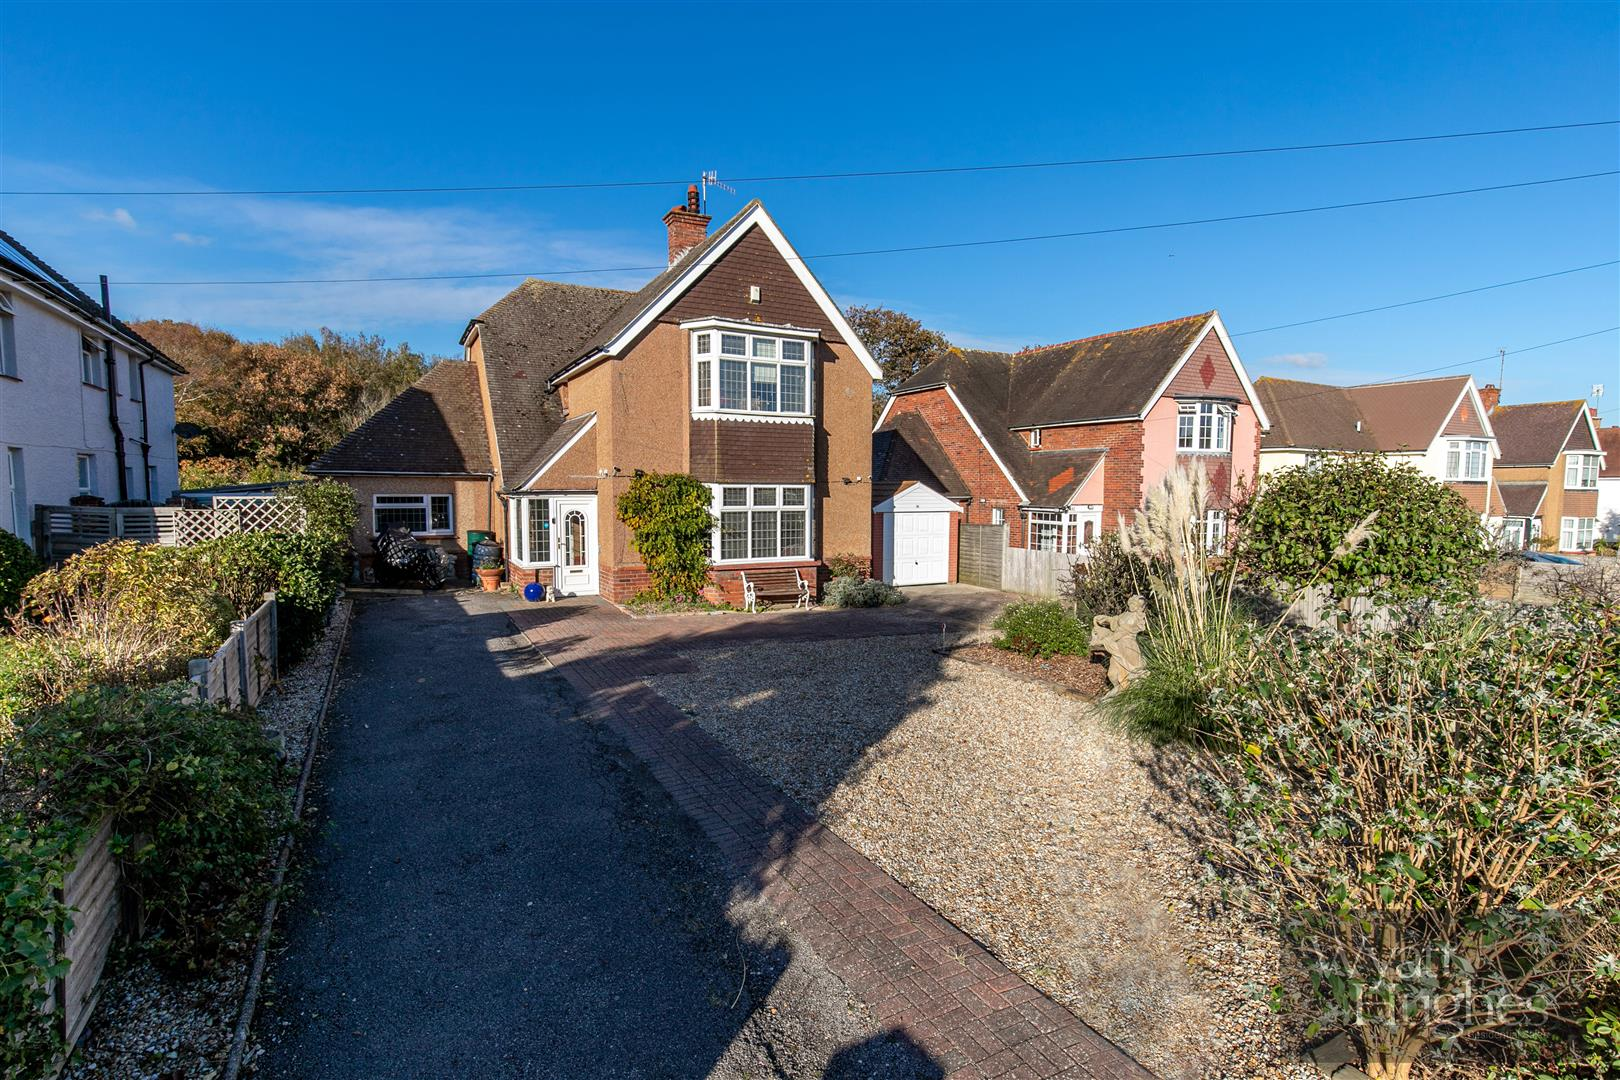 5 bed detached-house for sale in Cooden Drive, Bexhill-On-Sea, TN39